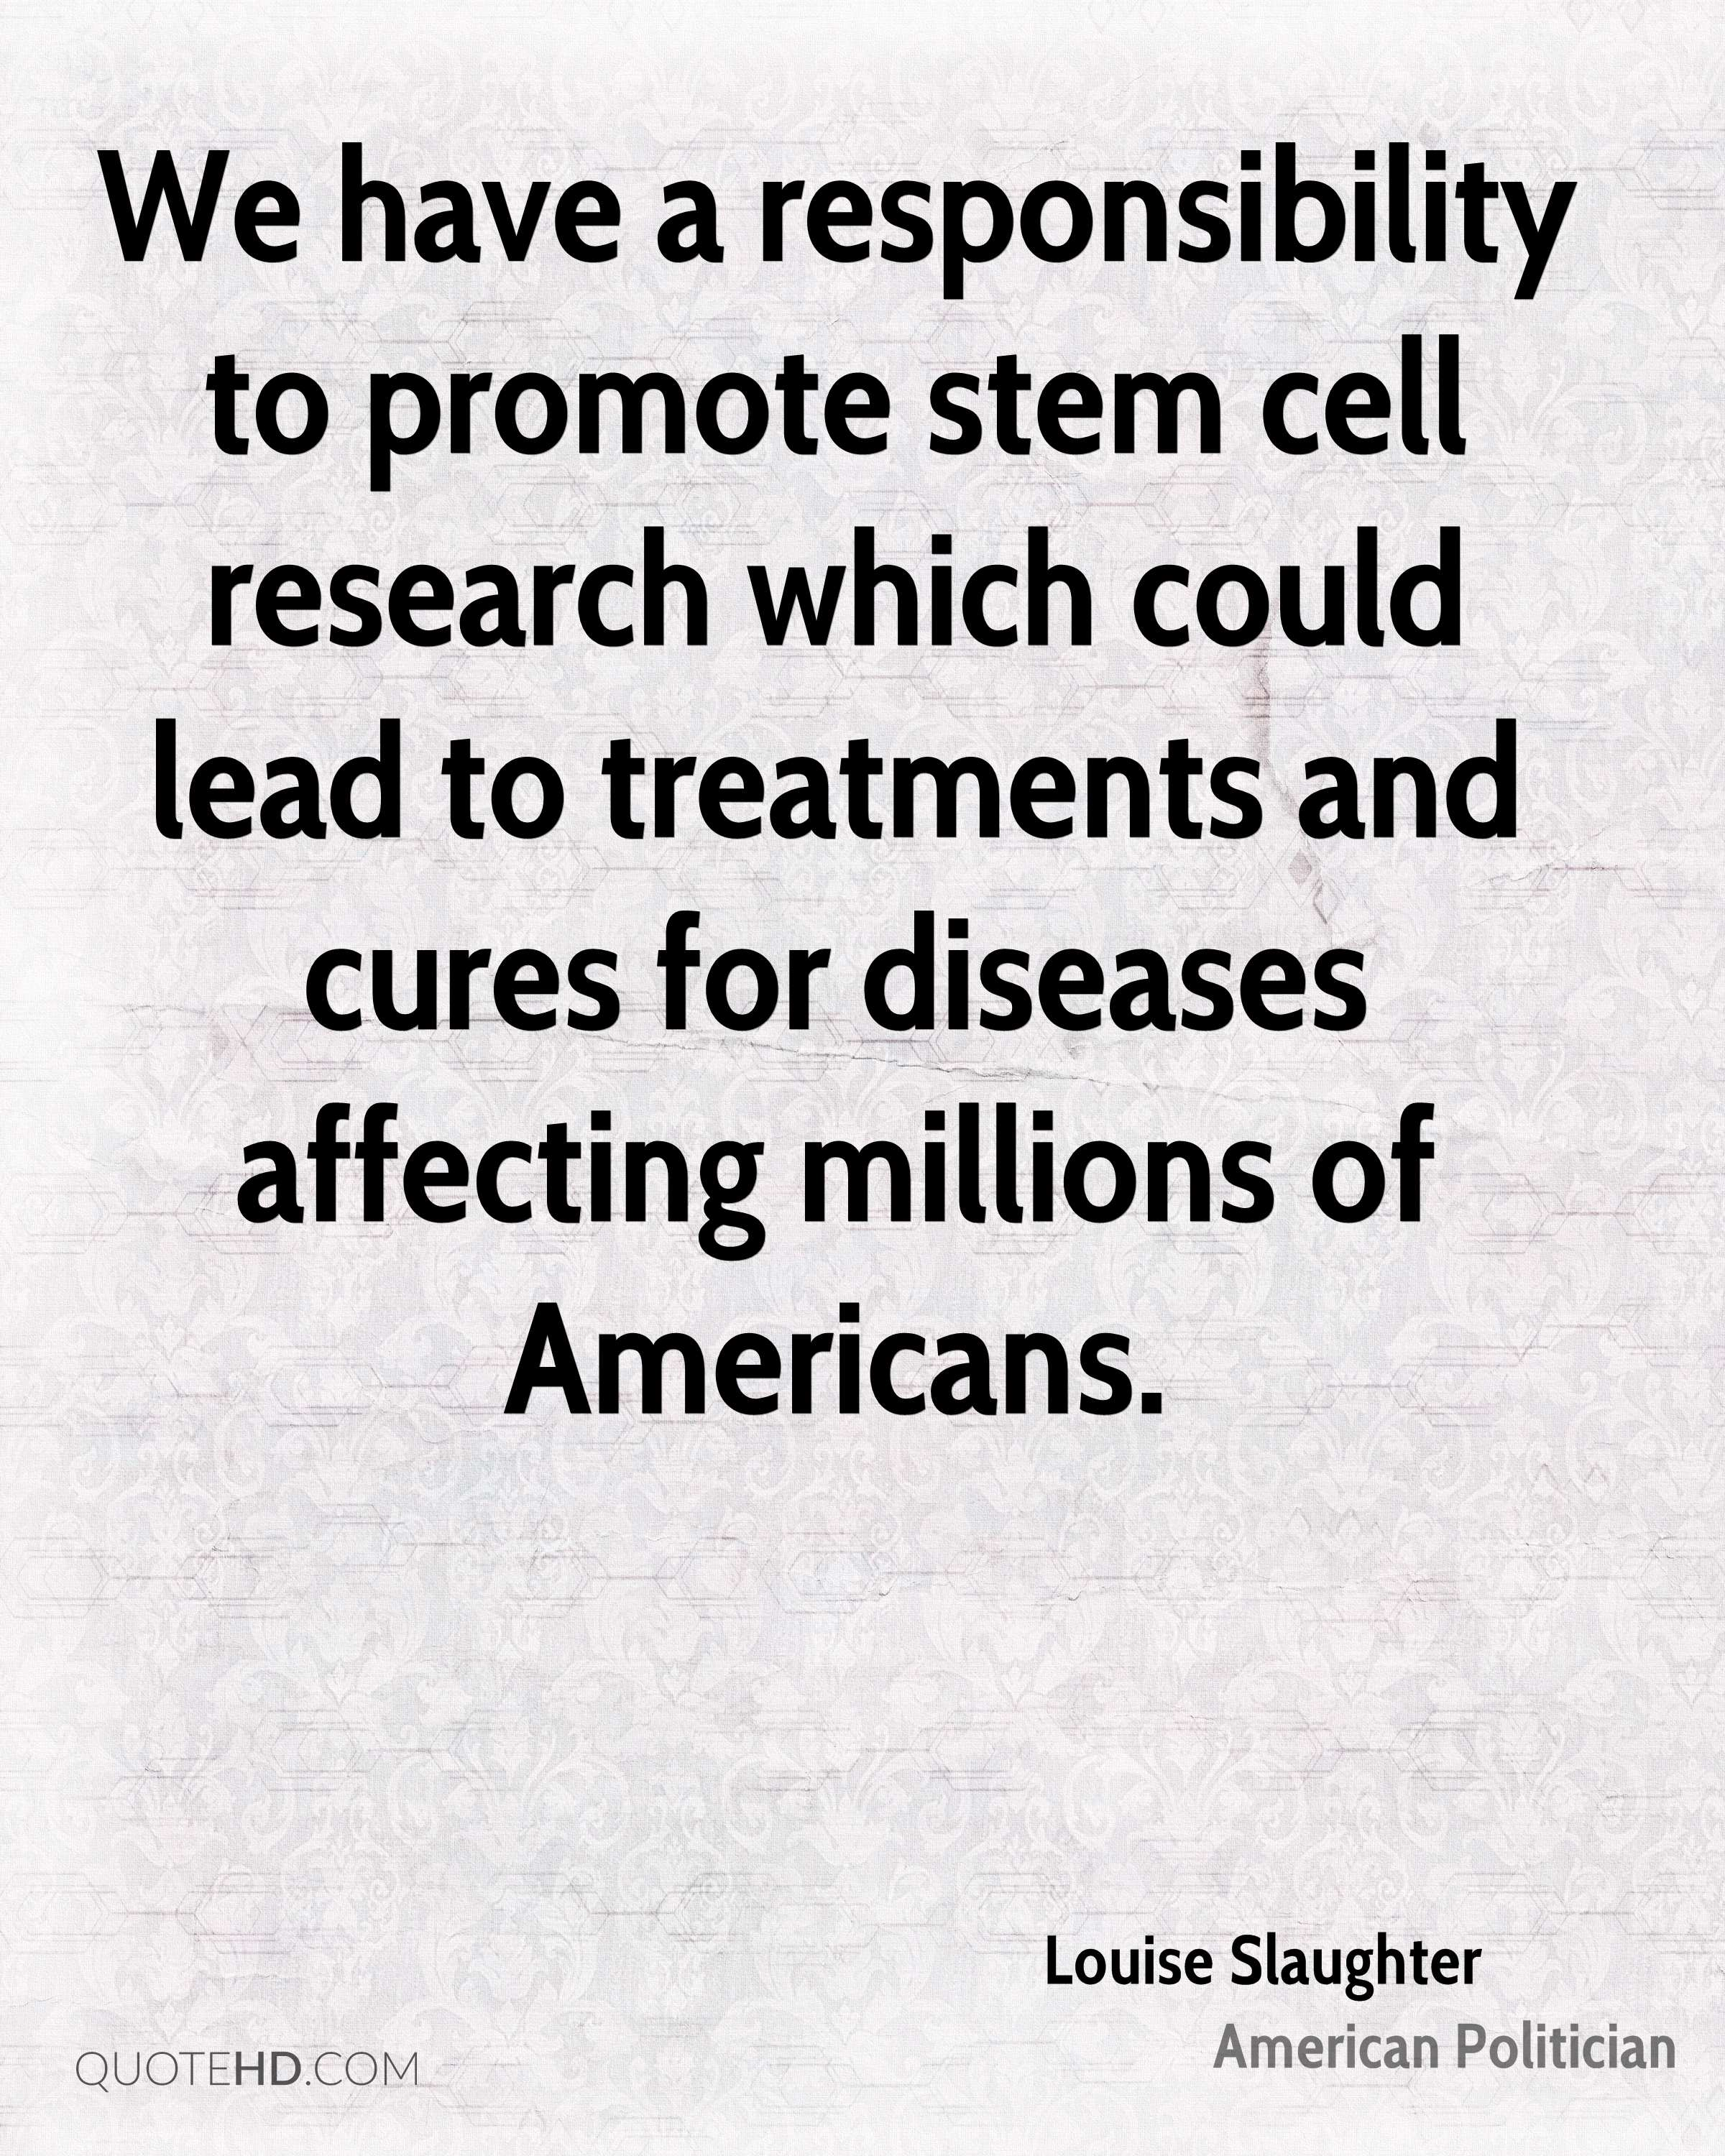 We have a responsibility to promote stem cell research which could lead to treatments and cures for diseases affecting millions of Americans.